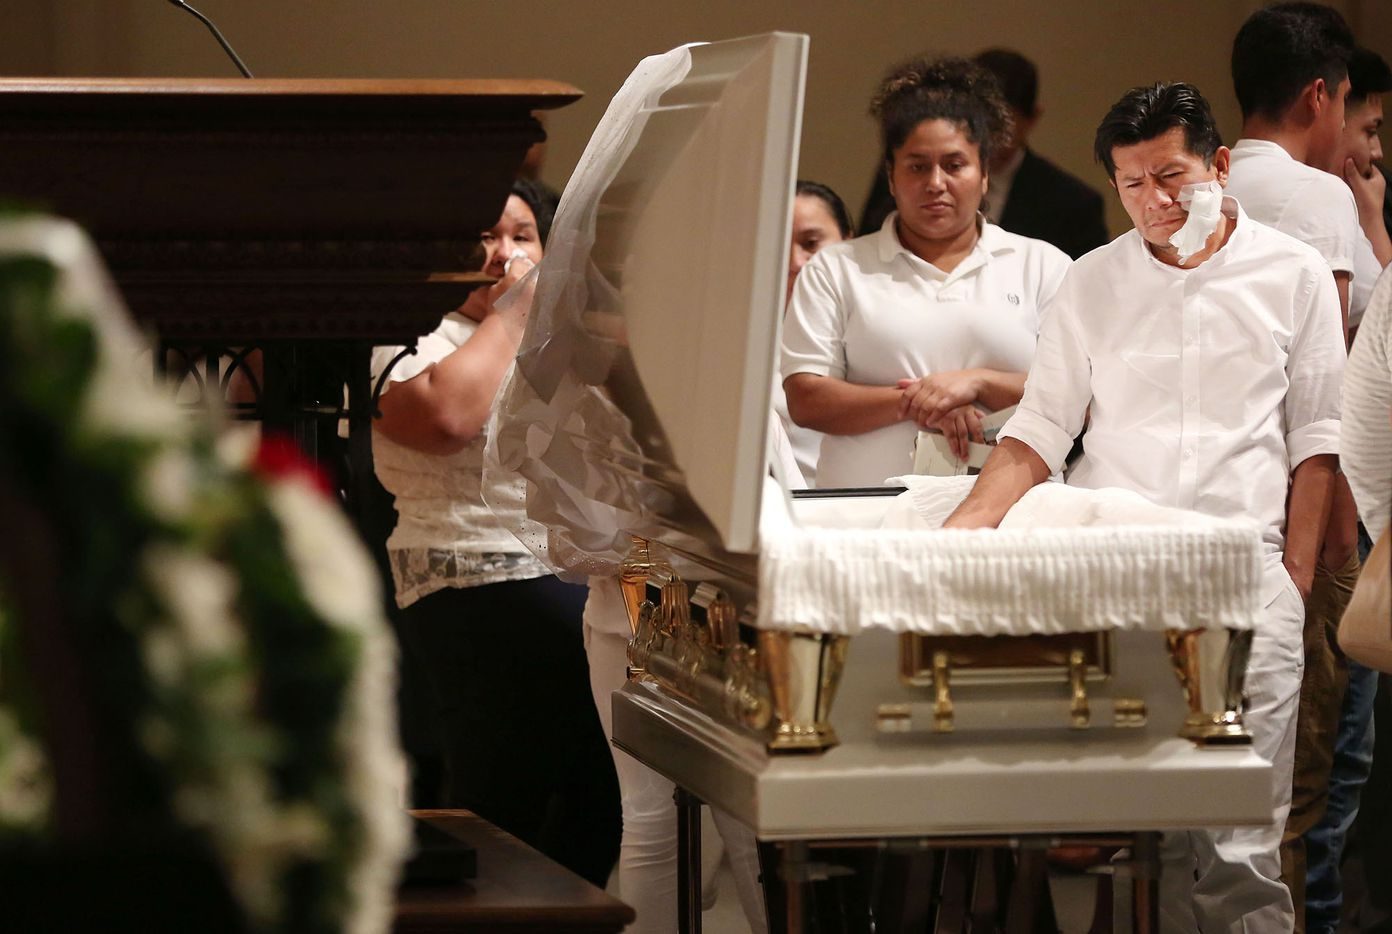 Jose Fiscal takes a moment with his deceased daughter, 12-year-old Linda Rogers, during her memorial service and viewing of  at Park Cities Presbyterian Church in Dallas on Thursday, March 1, 2018. Rogers was killed in a gas explosion at her home in Dallas.